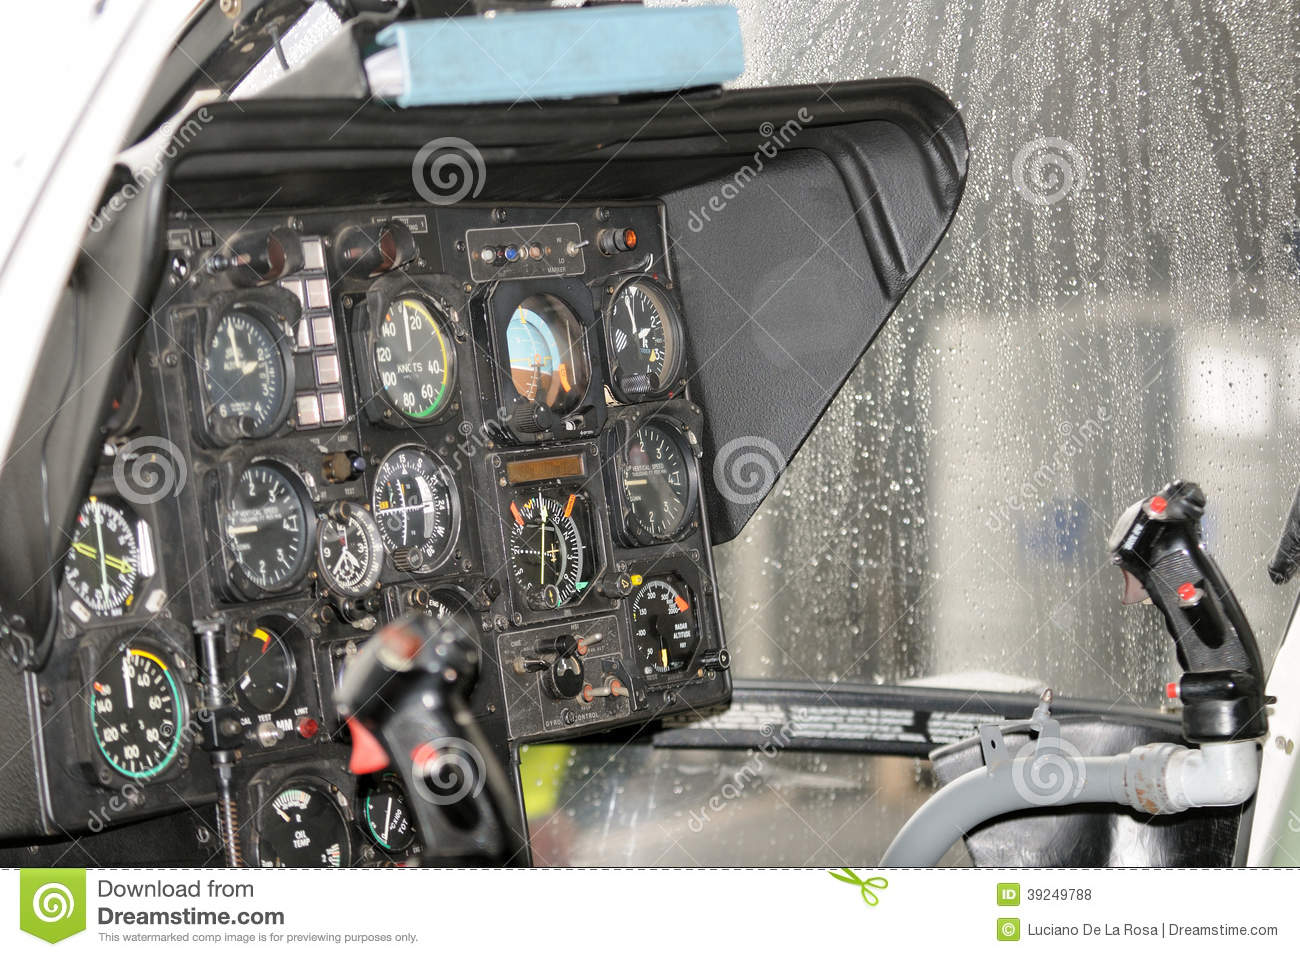 Instrumentation in rescue helicopter, cockpit